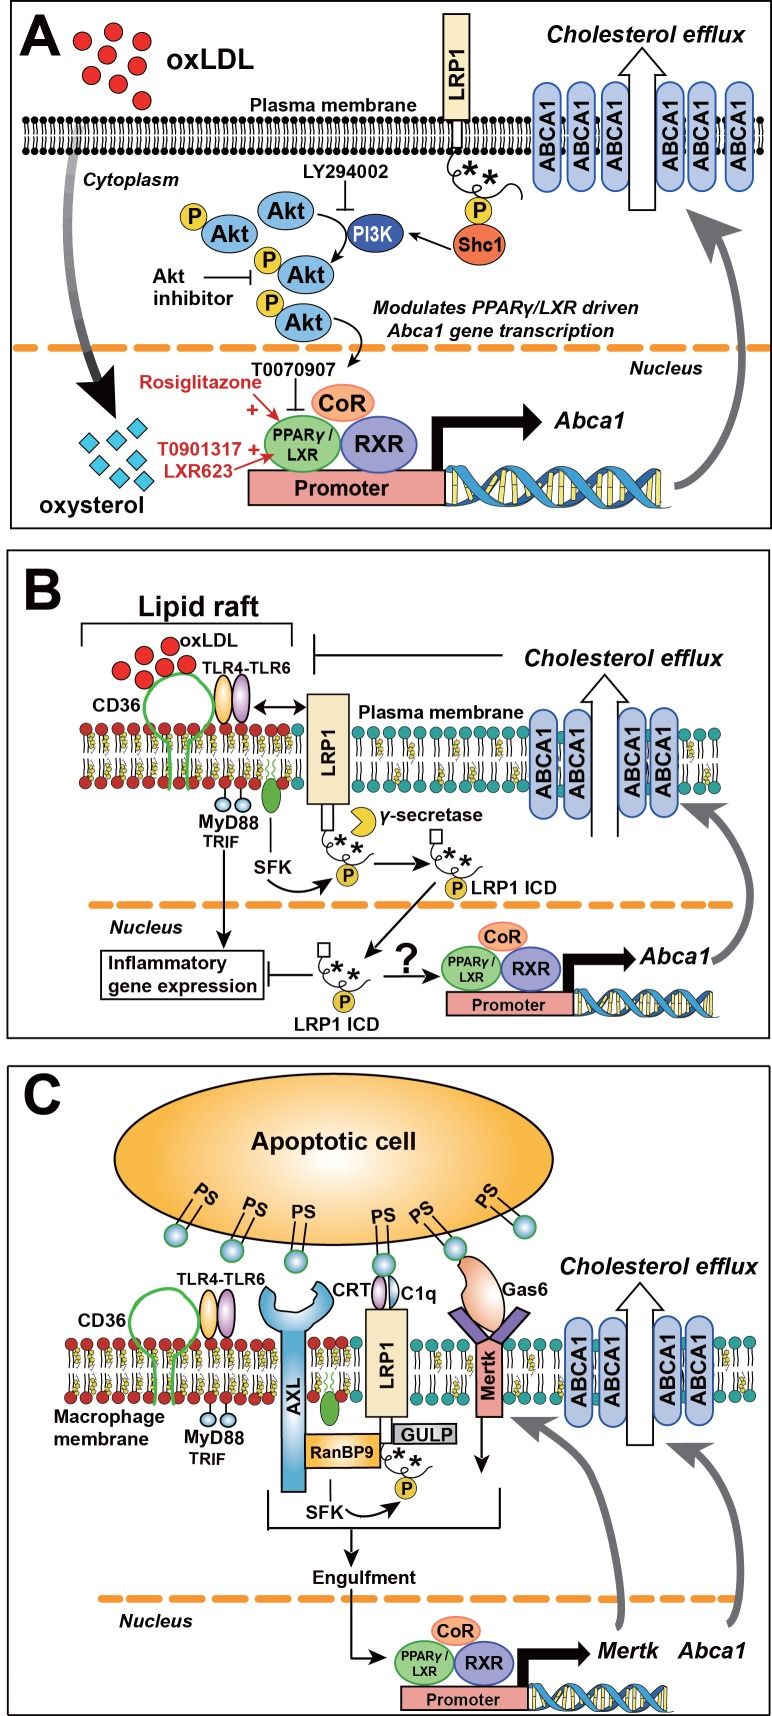 Role of LRP1 NPxY phosphorylation in macrophage lipid accumulation and atherogenesis. ( A ) Tyrosine phosphorylation of LRP1 NPxY motifs (as indicated by asterisks), specifically the distal NPxY motif, is necessary for interaction with Shc1, which in turn activates PI3K/Akt signaling. Phospho-Akt modulates PPARγ/LXR driven Abca1 gene transcription and is necessary for the full effect of ox-LDL and PPARγ/LXR induced expression of Abca1 to mediate cholesterol efflux. Inhibition of PI3K/Akt (using LY294002 or Akt inhibitor) results in only partial induction of Abca 1 in response to ox-LDL and PPARγ/LXR agonists (rosiglitazone, T0901317, LXR623). ( B ) LRP1 integrates inflammatory signals and cholesterol homeostasis in macrophages. Inflammatory signals are initiated by the interaction between oxLDL and CD36/TLR4-6 in lipid rafts. In the setting of inflammation or cholesterol loading, increased proximity of LRP1 with activated SFKs in lipid rafts favors LRP1 tyrosine phosphorylation. This, in turn, activates a Shc1/PI3K/Akt/Pparγ/Lxrα axis that promotes Abca1 expression and cellular cholesterol export, which then leads to reduction of lipid raft cholesterol content and dissociation of LRP1 from the lipid raft, thus creating a negative feedback loop. LRP1 can also be cleaved by γ–secretase, thereby releasing the intracellular domain (ICD) which translocates to the nucleus where it suppresses inflammatory gene expression ( Zurhove et al., 2008 ). Whether the LRP1 ICD, in a phosphorylated or unphosphorylated state, can also alter ABCA1 expression is currently unknown. CD36, cluster of differentiation 36; TLR, toll like receptor; MyD88, myeloid differentiation primary response protein 88; TRIF, TIR domain-containing adaptor protein inducing IFNβ; SFK, SRC family kinase. ( C ) LRP1 regulates clearance of apoptotic cells (AC) through efferocytosis. LRP1 coordinates with other receptors, such AXL and MerTK, and adaptors such as RanBP9 and GULP, to recognize and engulf apoptotic